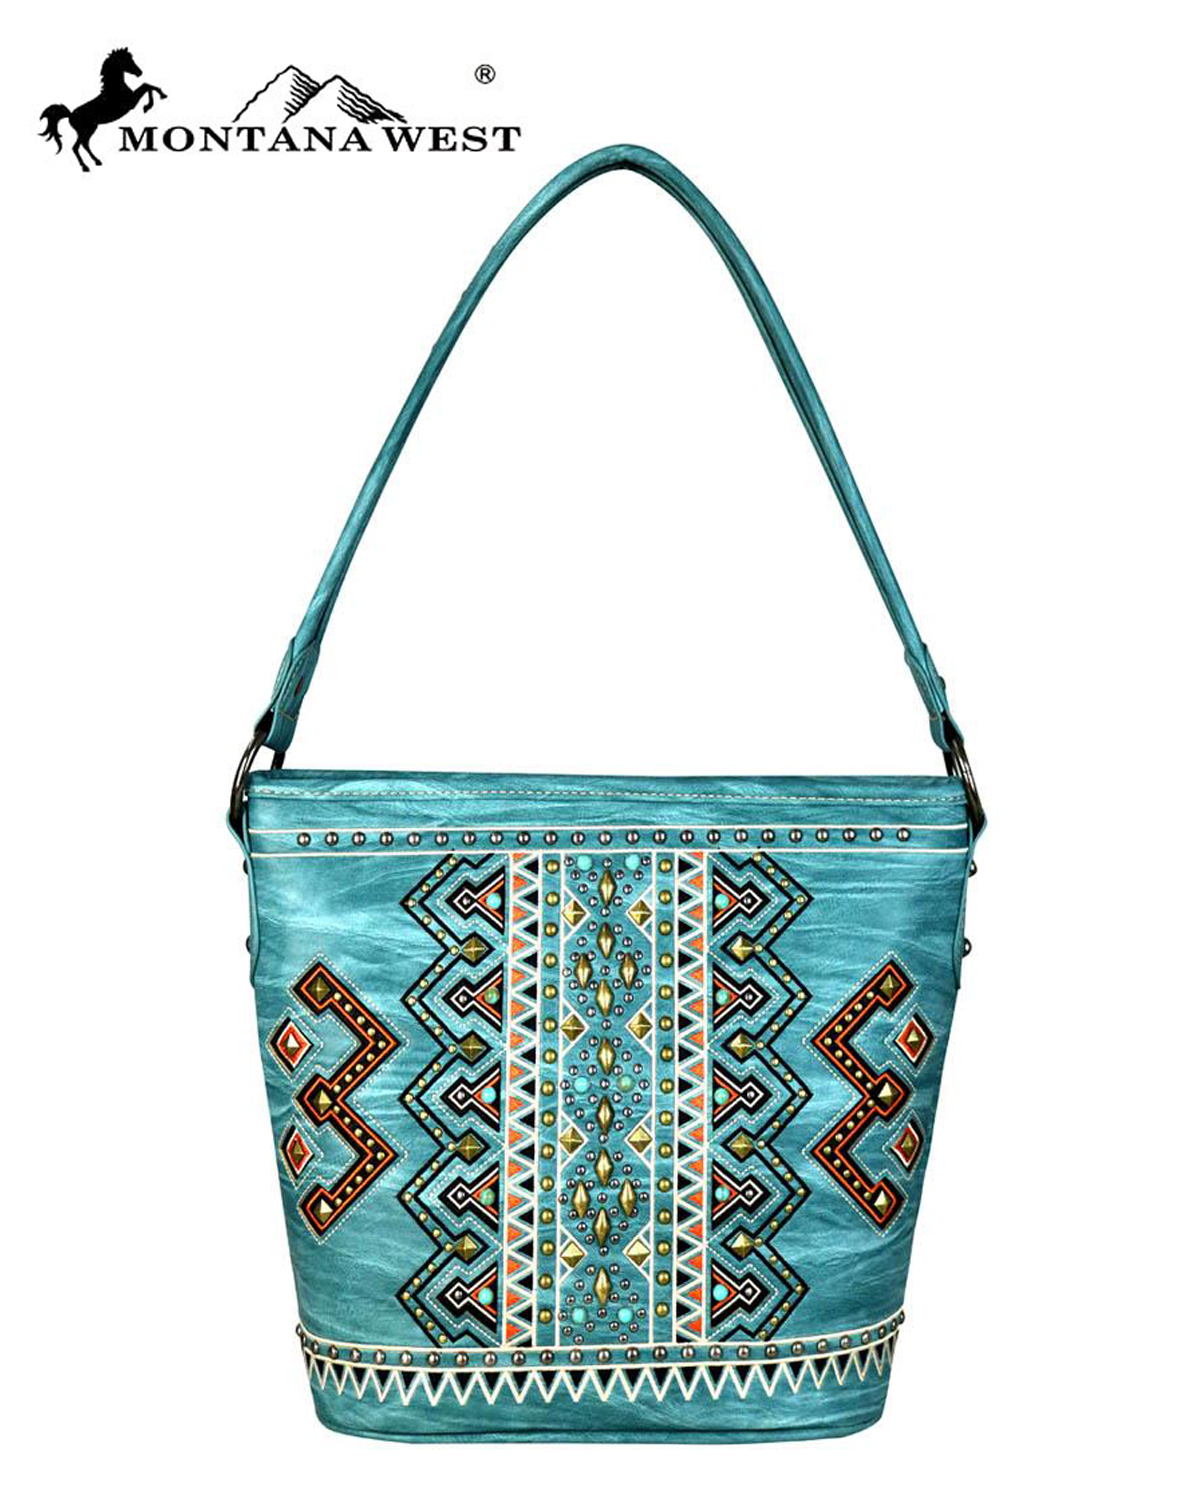 Montana West Hobo Handbags Western Colorful Embroidered Aztec Purses MW652-916